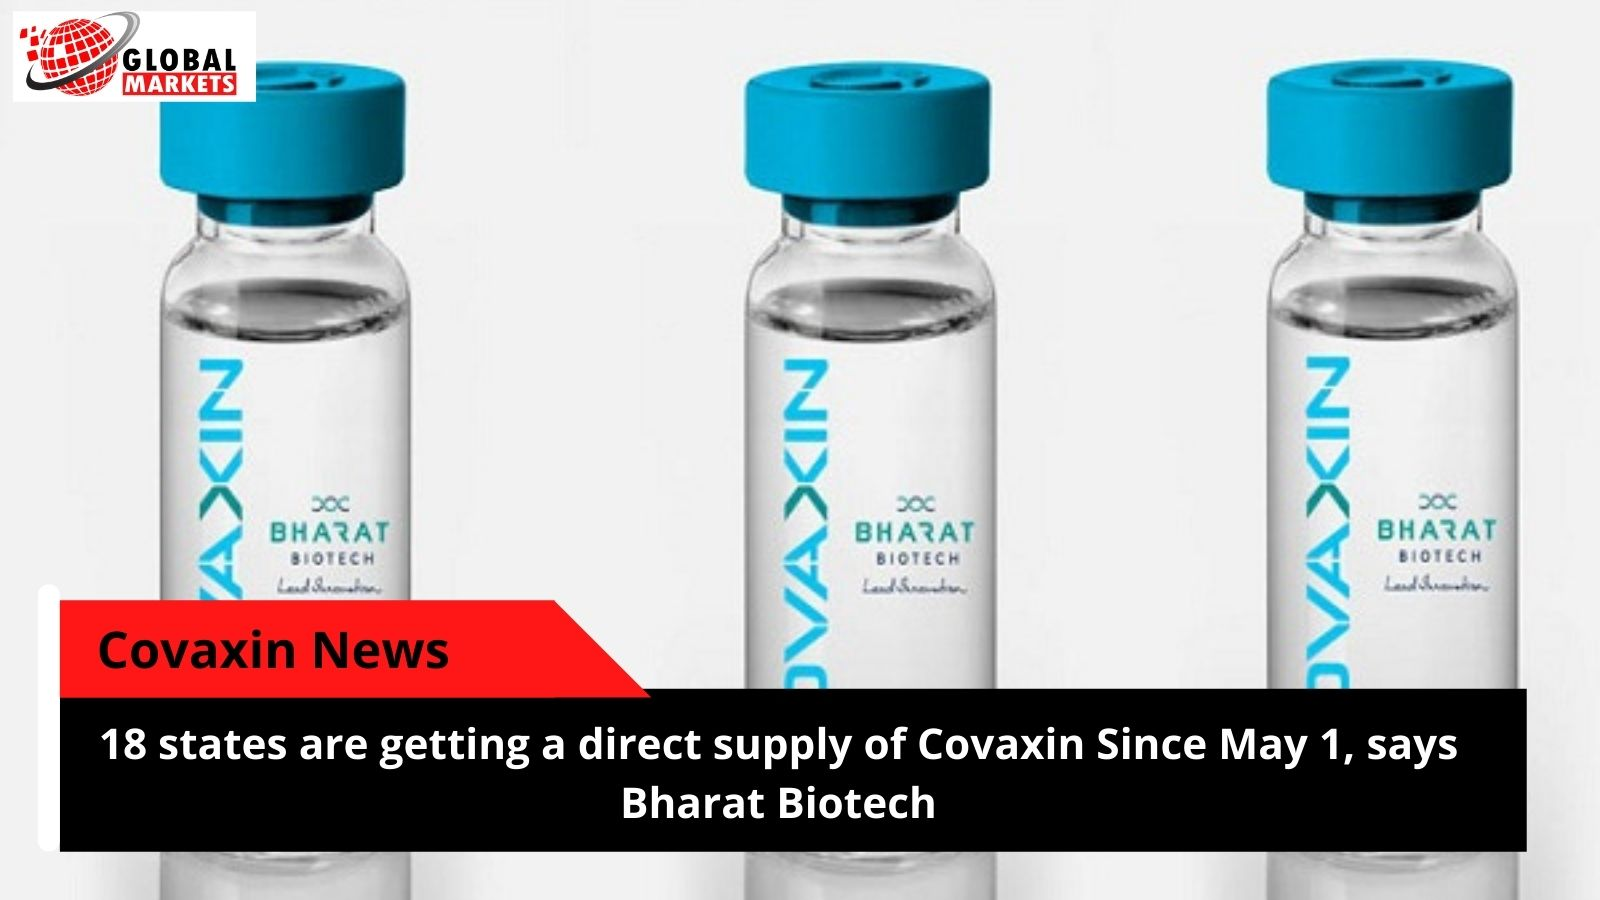 18 states are getting direct supply of Covaxin from May 1, says Bharat Biotech